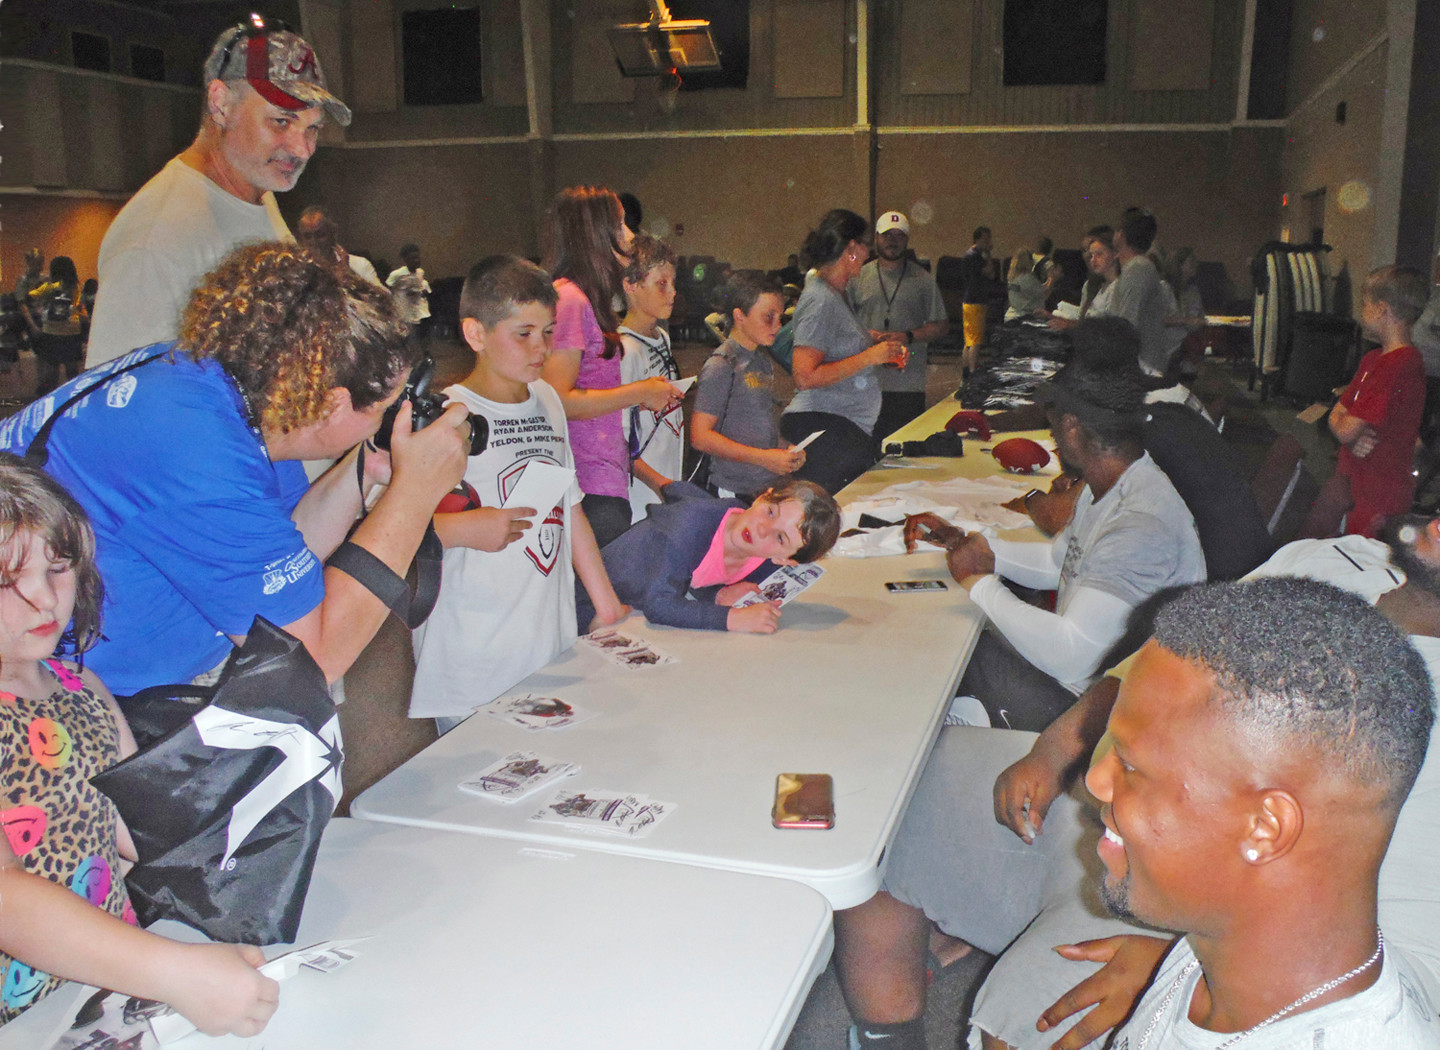 Meeting Cincinnati Bengals cornerback Torren McGaster and other players at Trojan Hall for autographs.